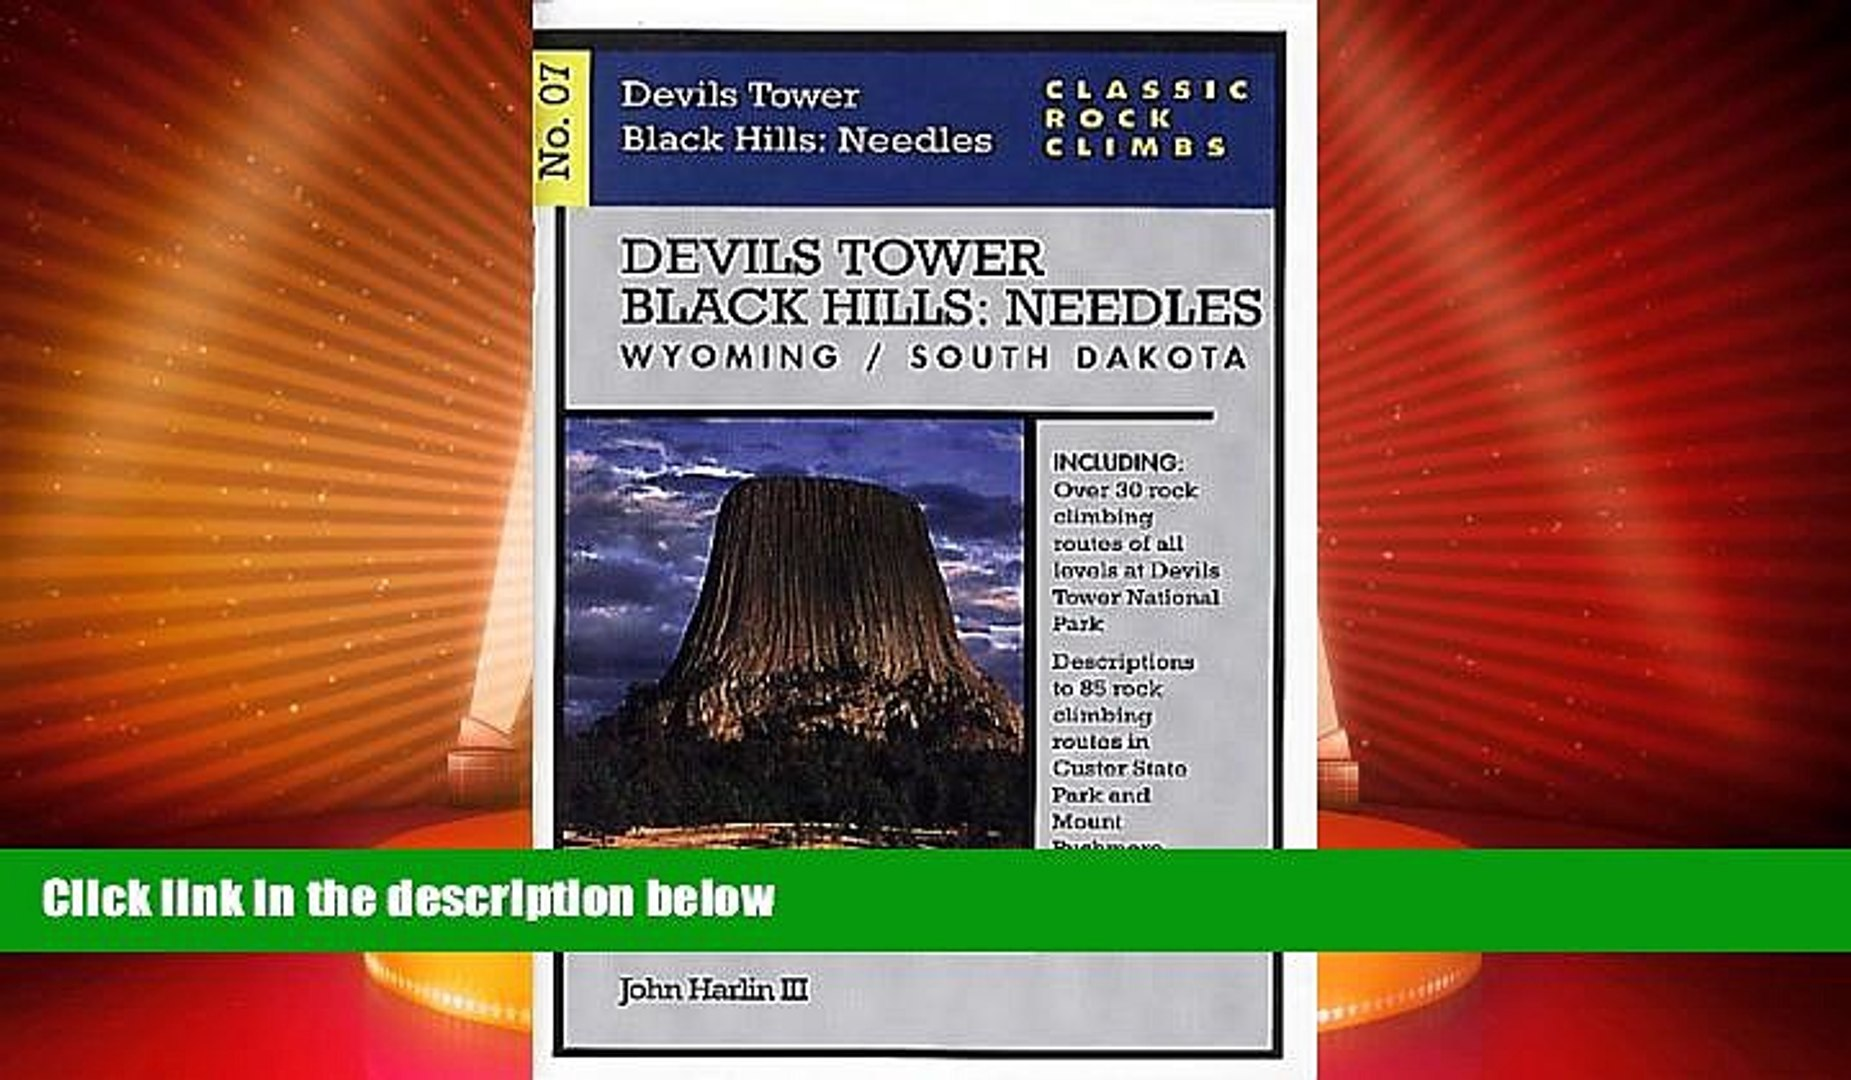 Big Deals  Classic Rock Climbs No. 07 Devils Tower/Black Hills: Needles, Wyoming and South  Best